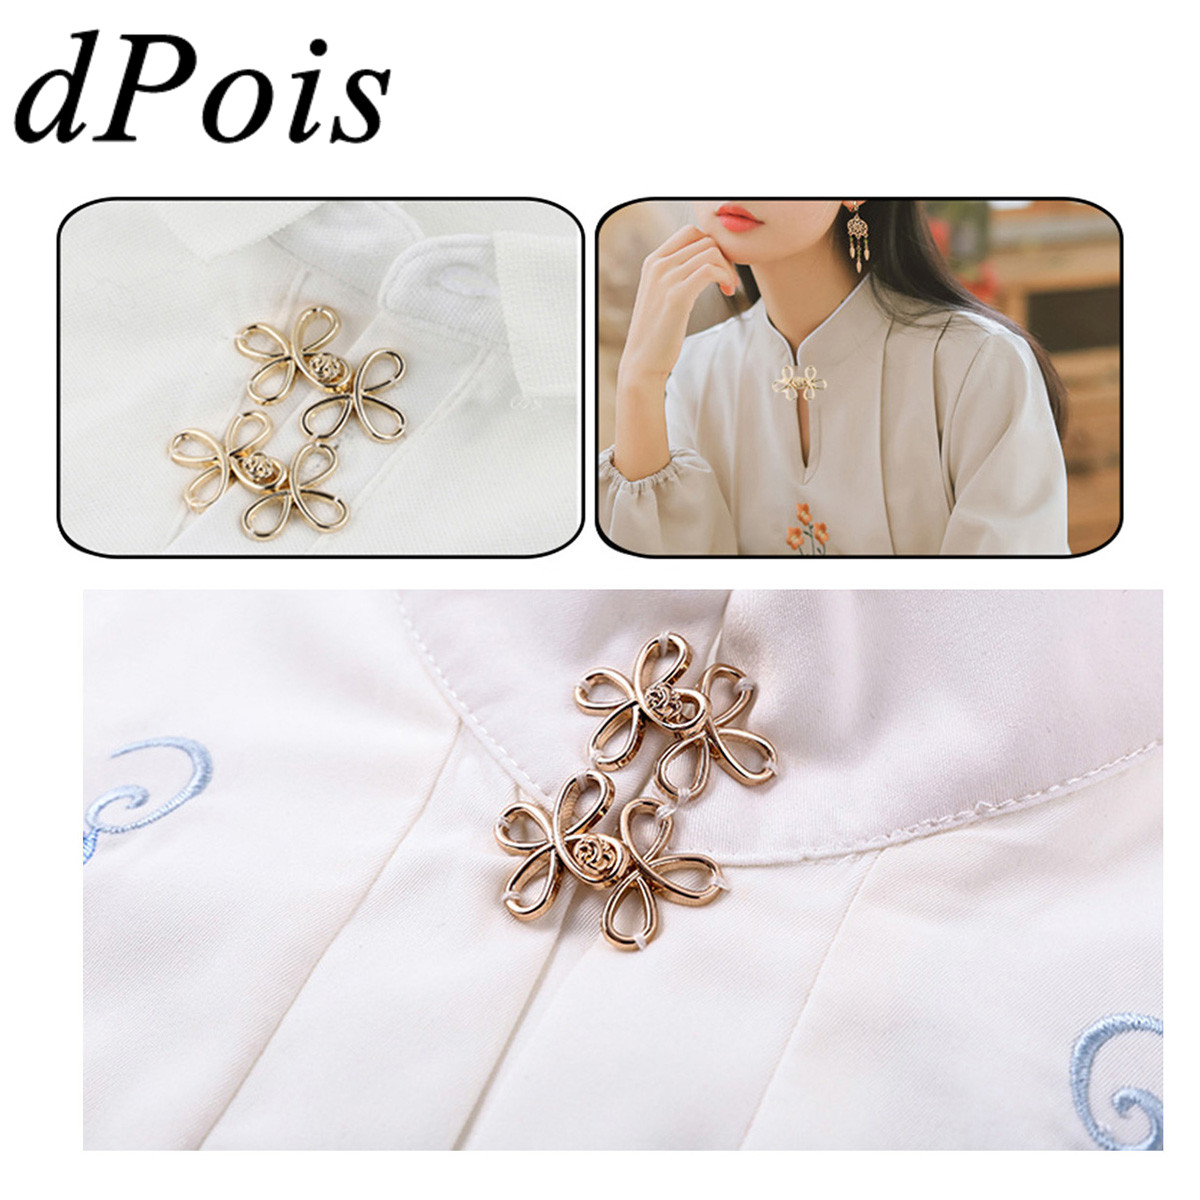 5 Pairs Chinese Knots Shaped Cape Cloak Clasp Fasteners Sweater Cardigan Blouse Shirt Collar Clip Women Girls Scarf Shawl Brooch